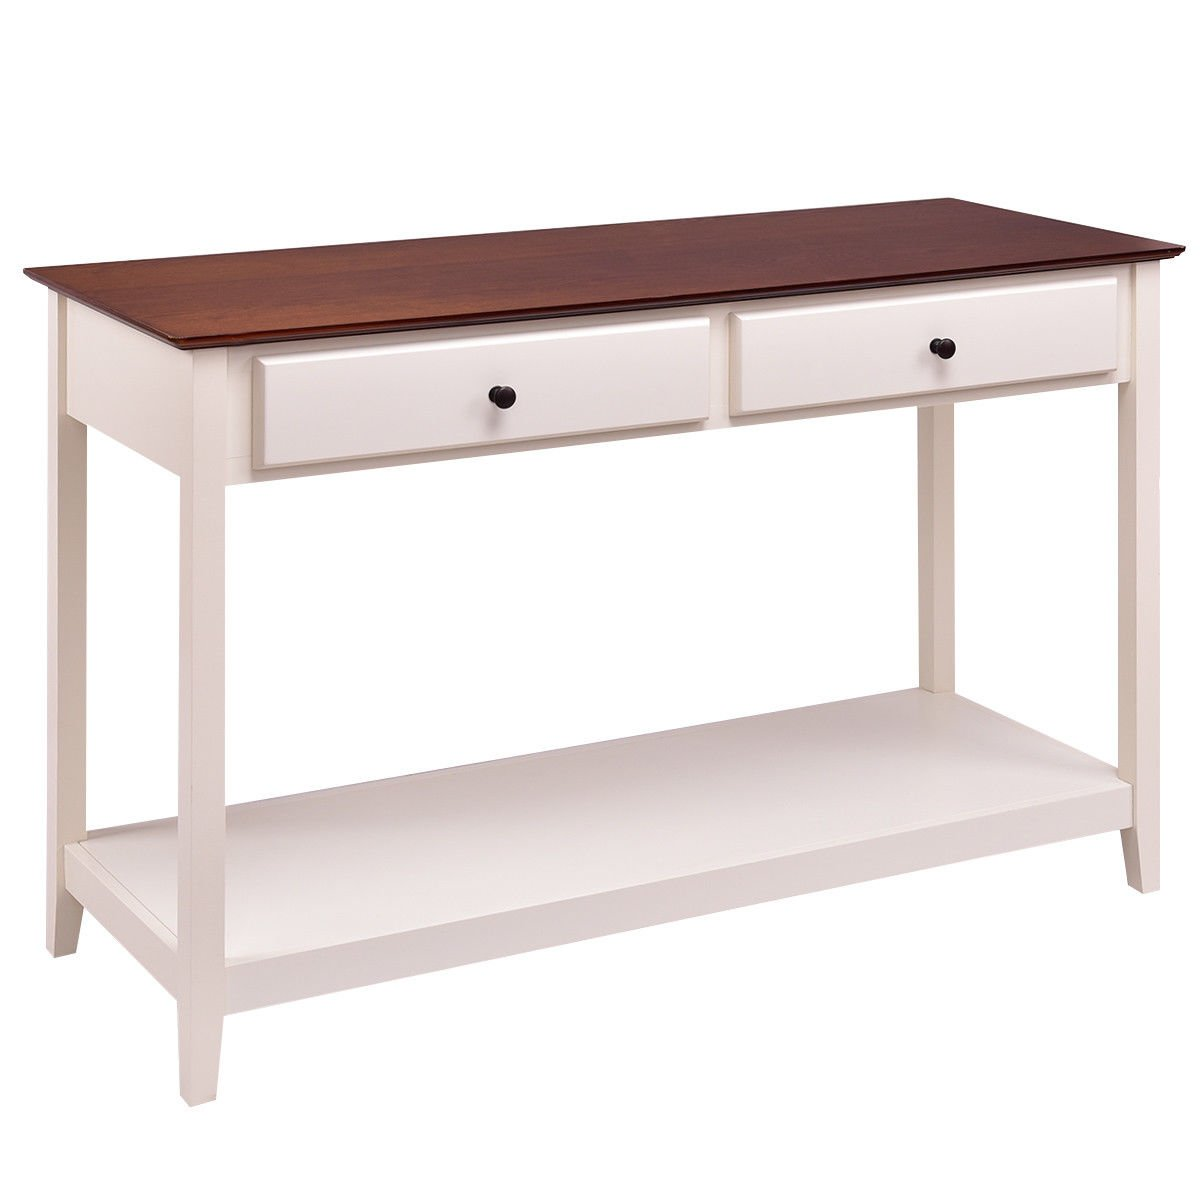 Giantex Console Sofa Table Wood Entryway Living Room Accent Stand w/Drawer and Shelf (White & Coffee) by Giantex